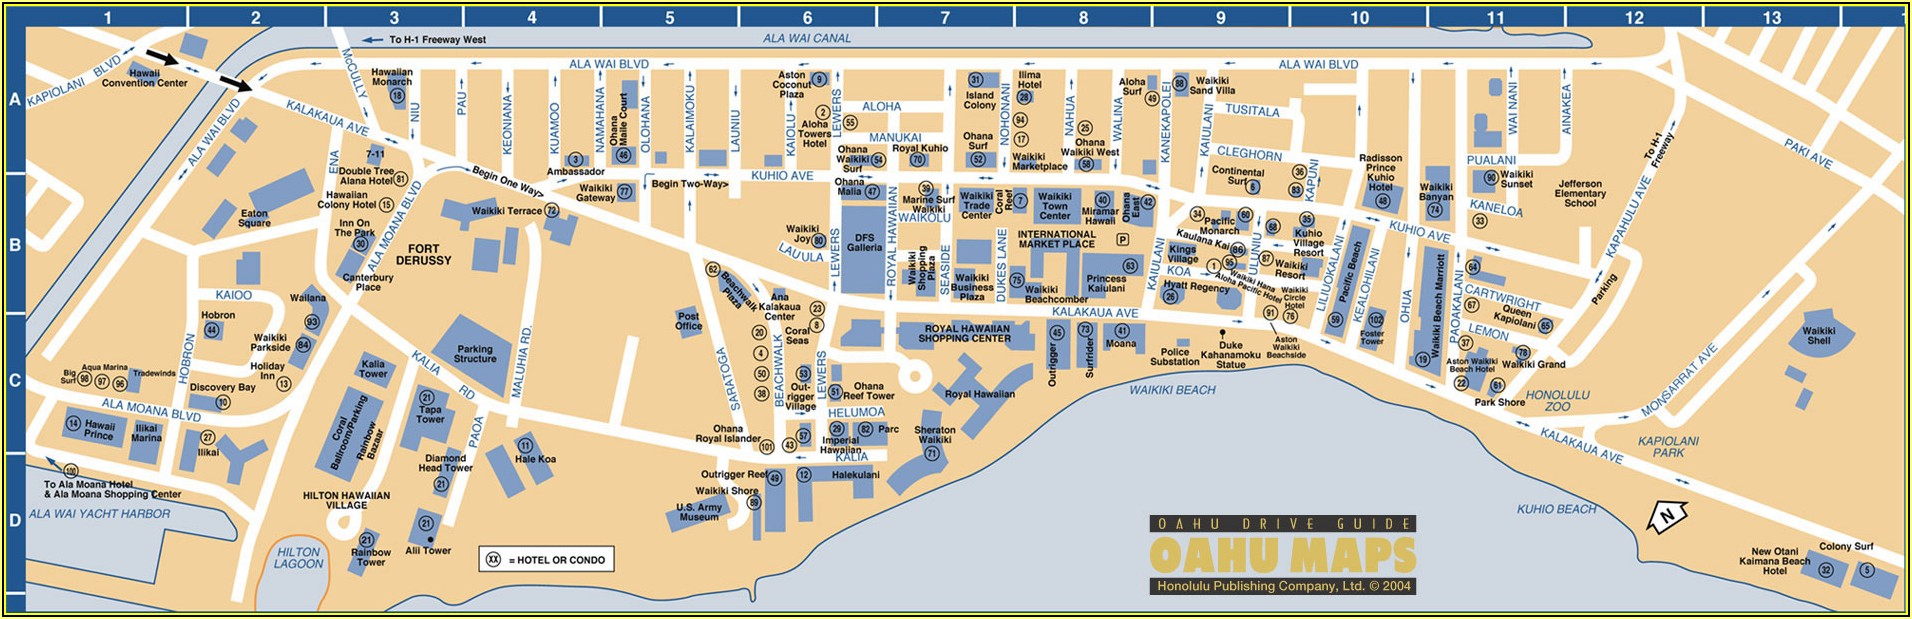 Hotels On Waikiki Beach Map